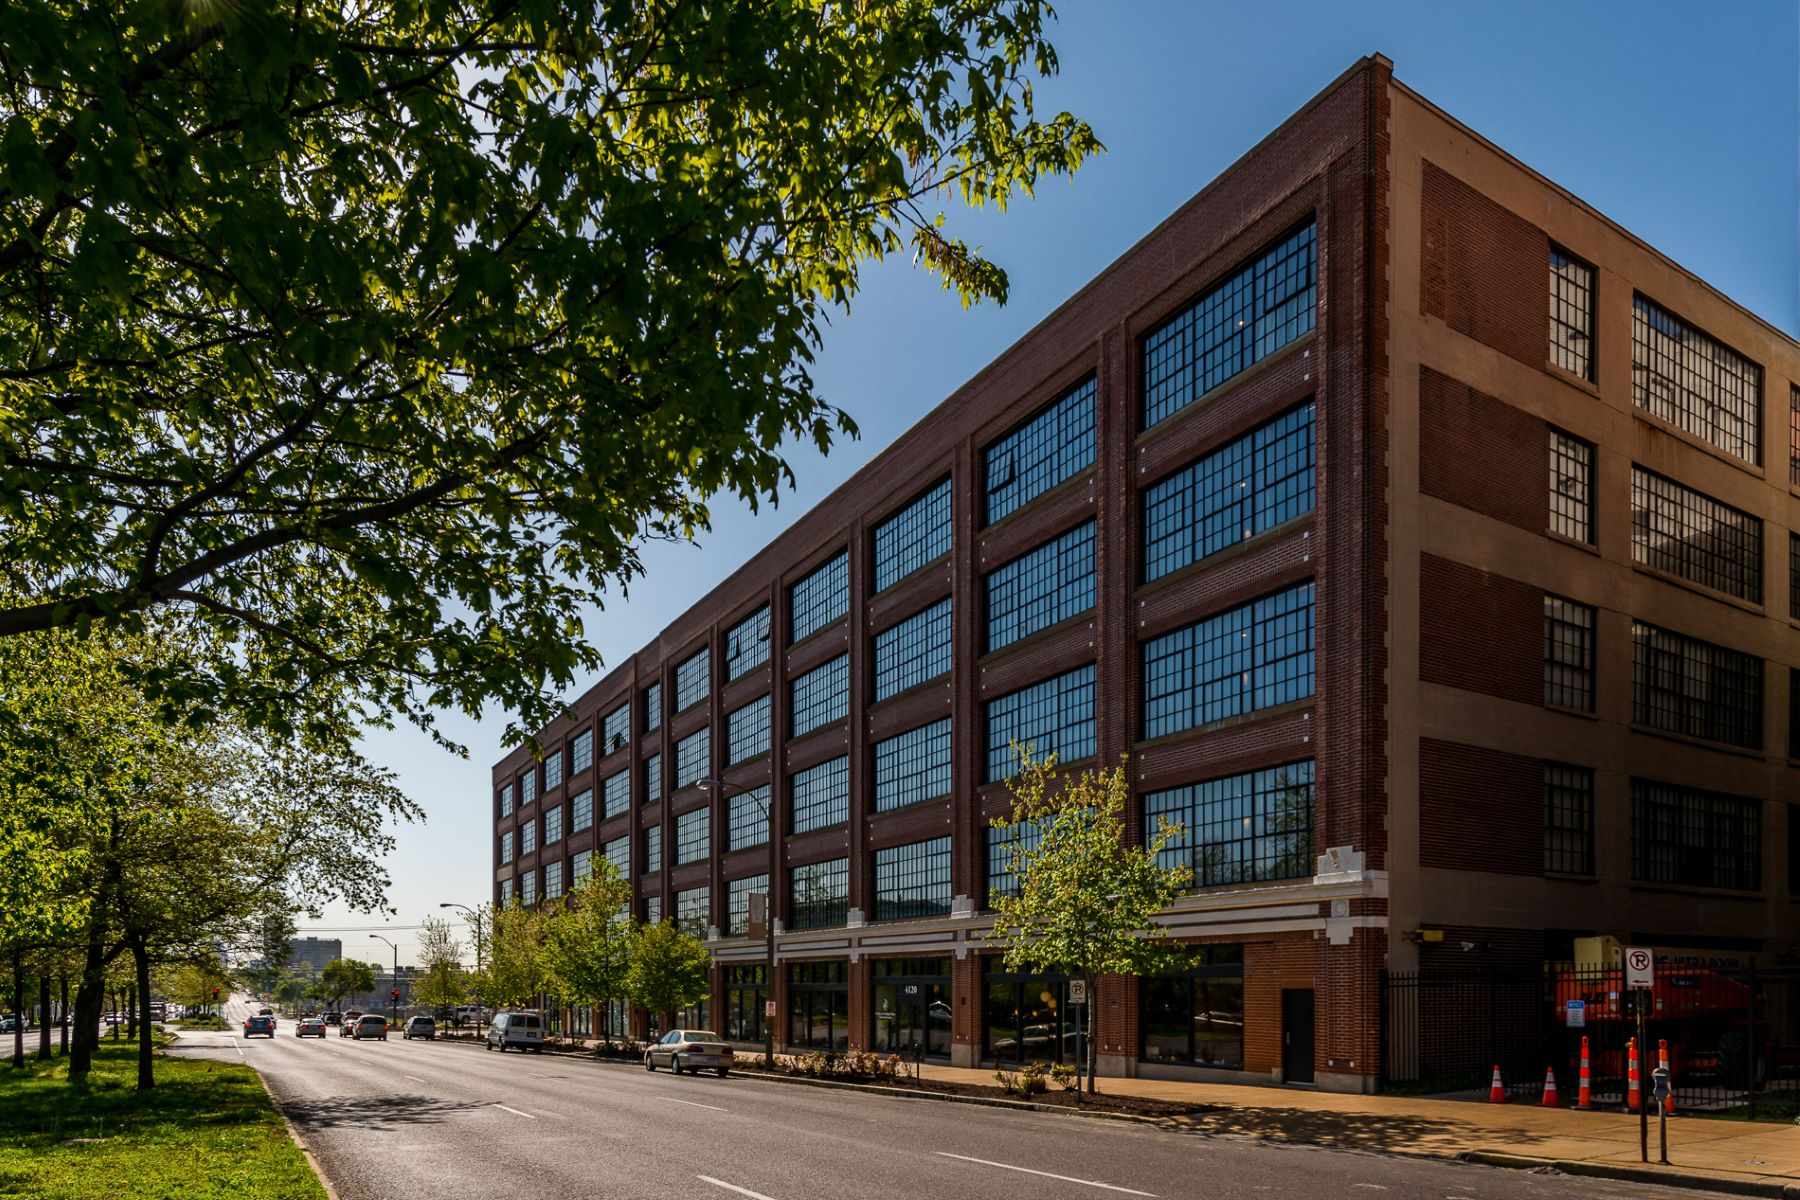 Property for Rent at West End Lofts 4100 Forest Park Avenue Unit 511 St. Louis, Missouri 63108 United States